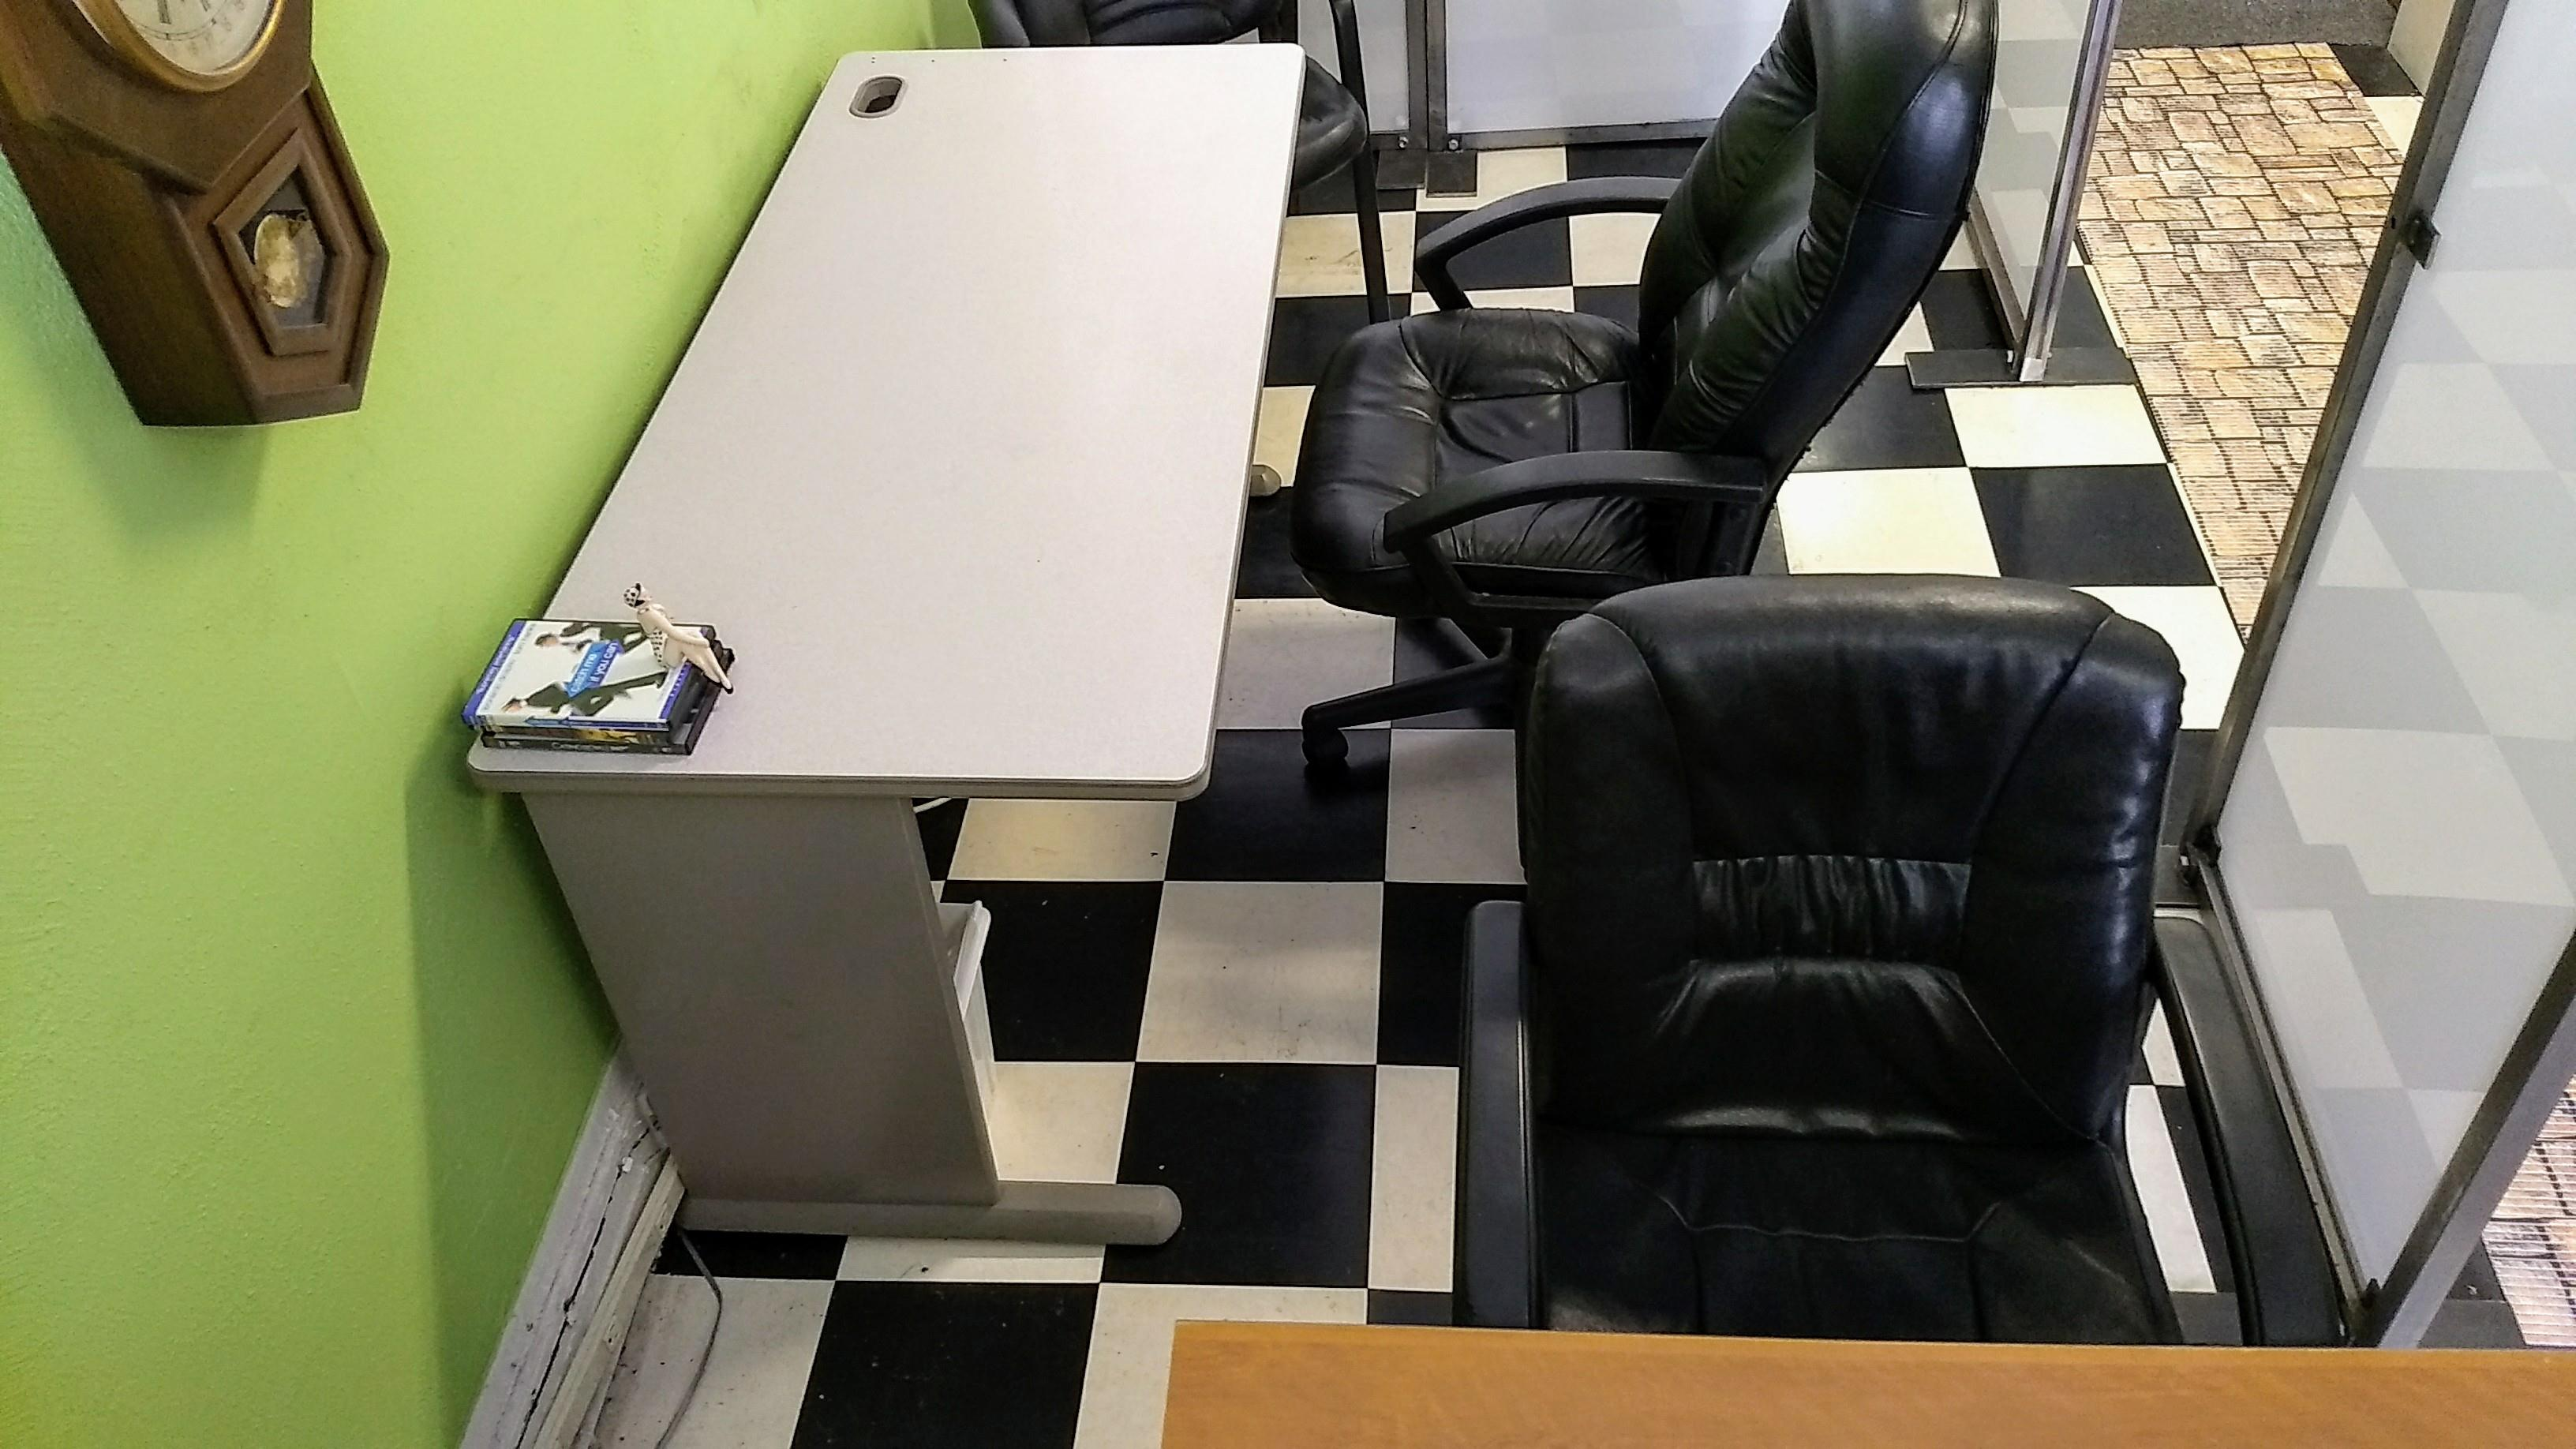 Complete Financial - Semi-Private Office Space, Fits 2 desks.